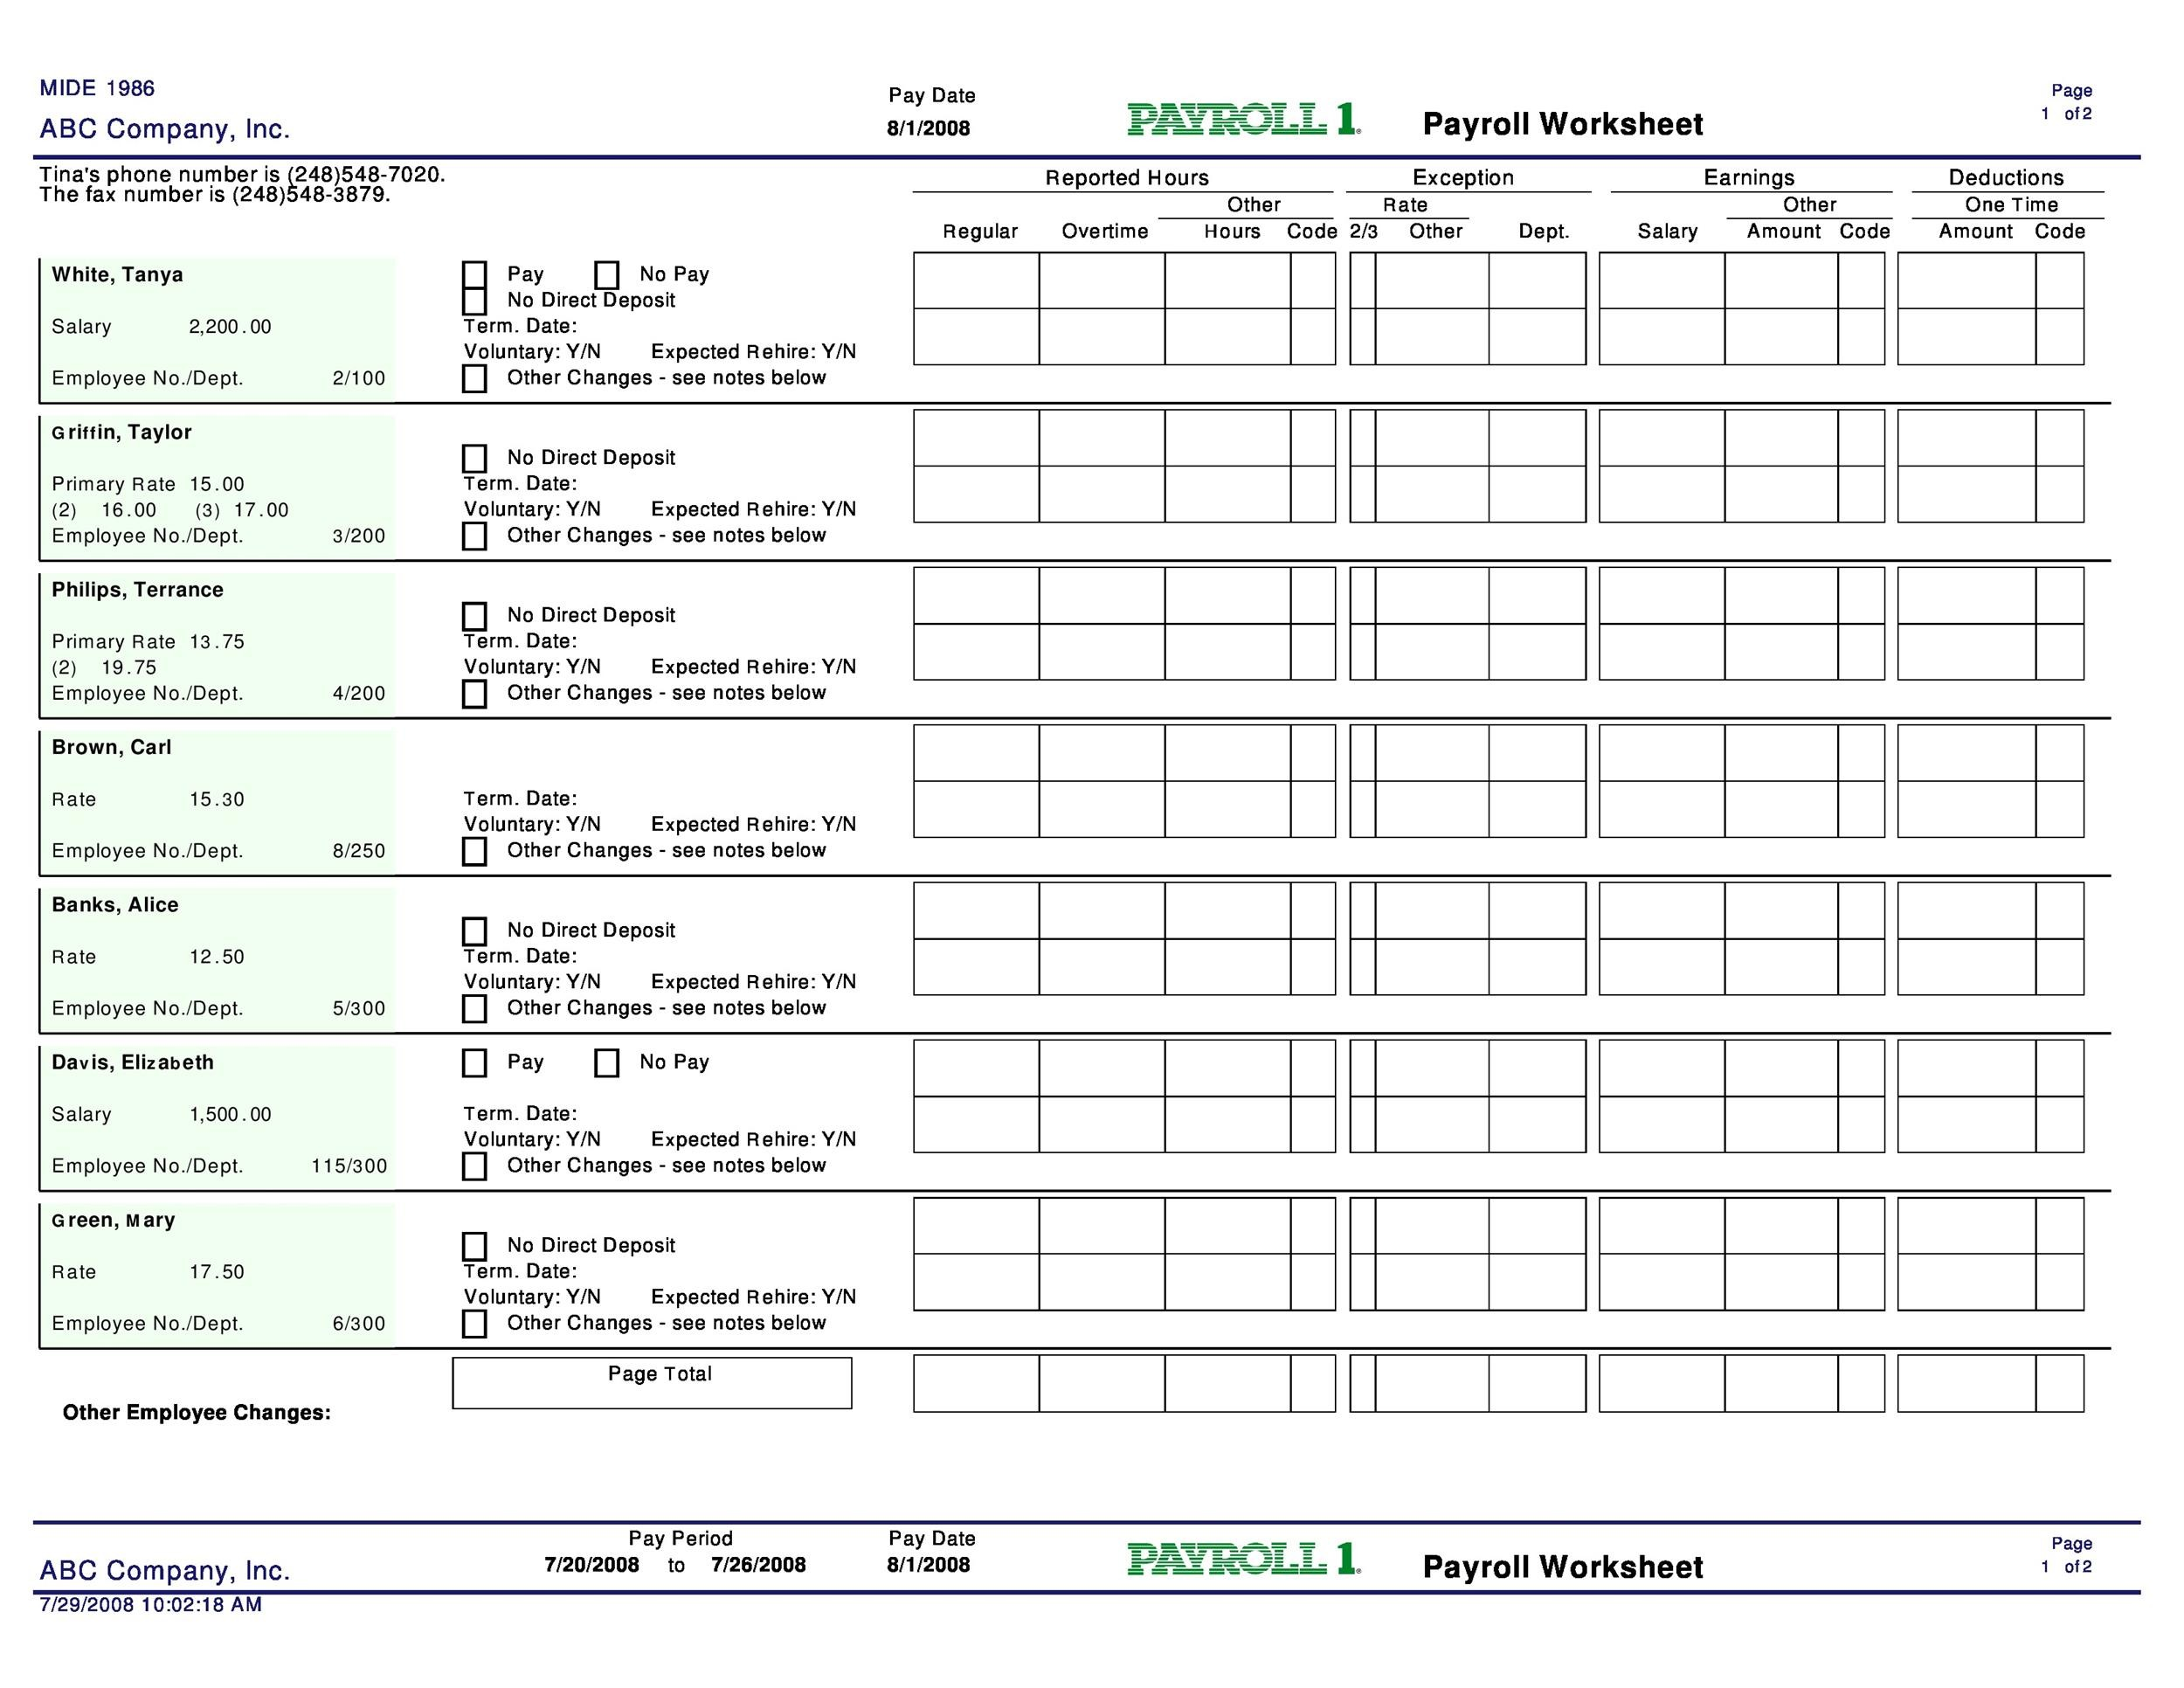 40+ Free Payroll Templates  Calculators - Template Lab - free payroll templates